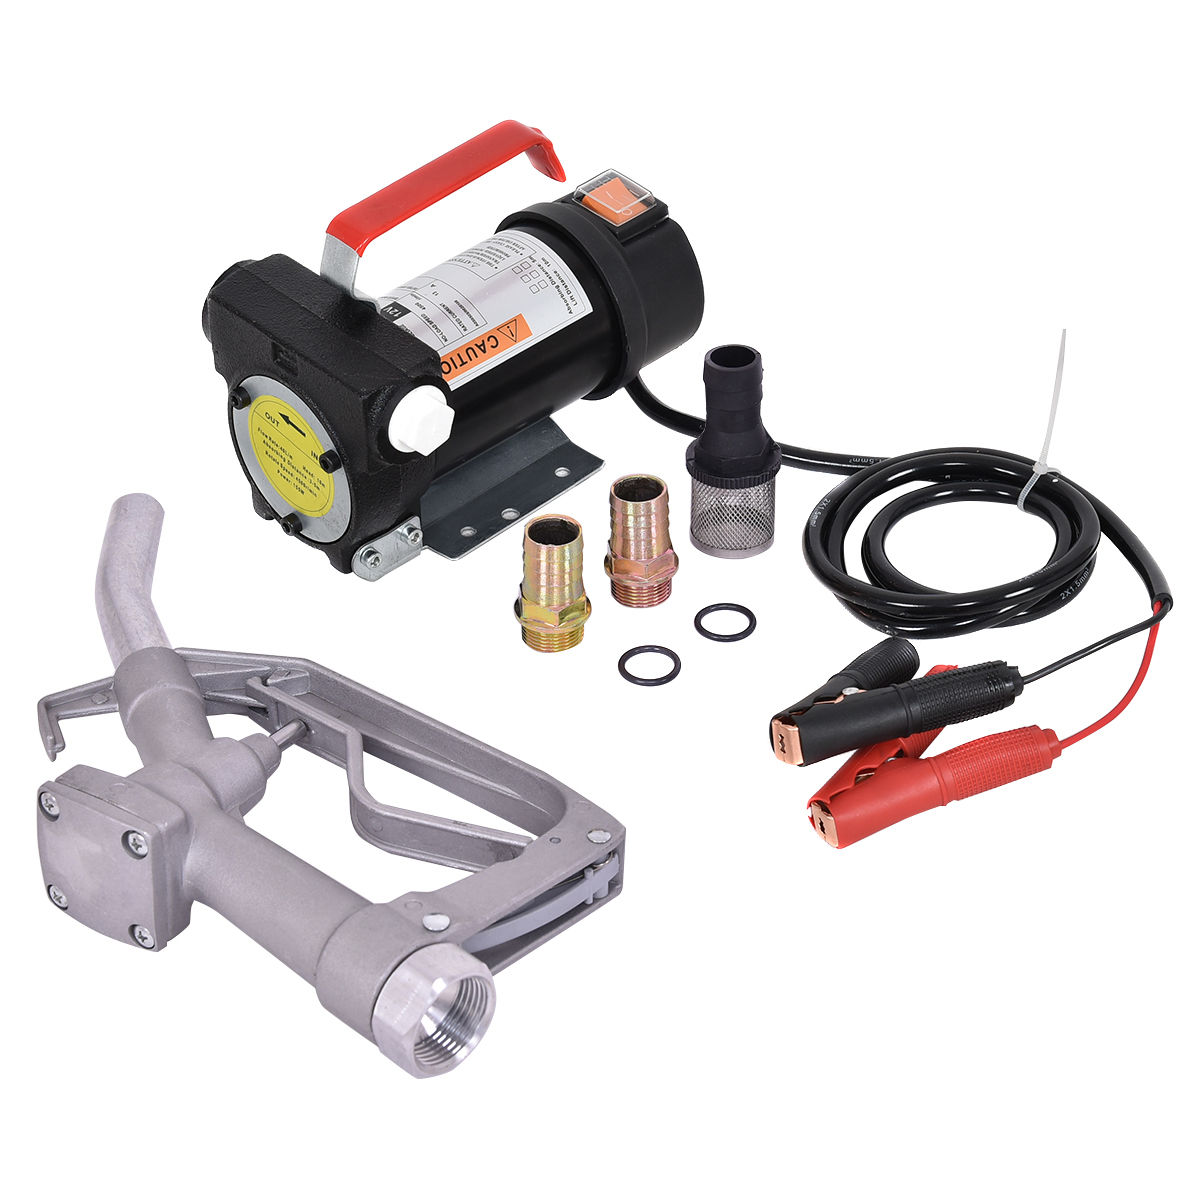 Costway 12V 10GPM Electric Diesel Oil And Fuel Transfer Extractor Pump w/ Nozzle & Hose